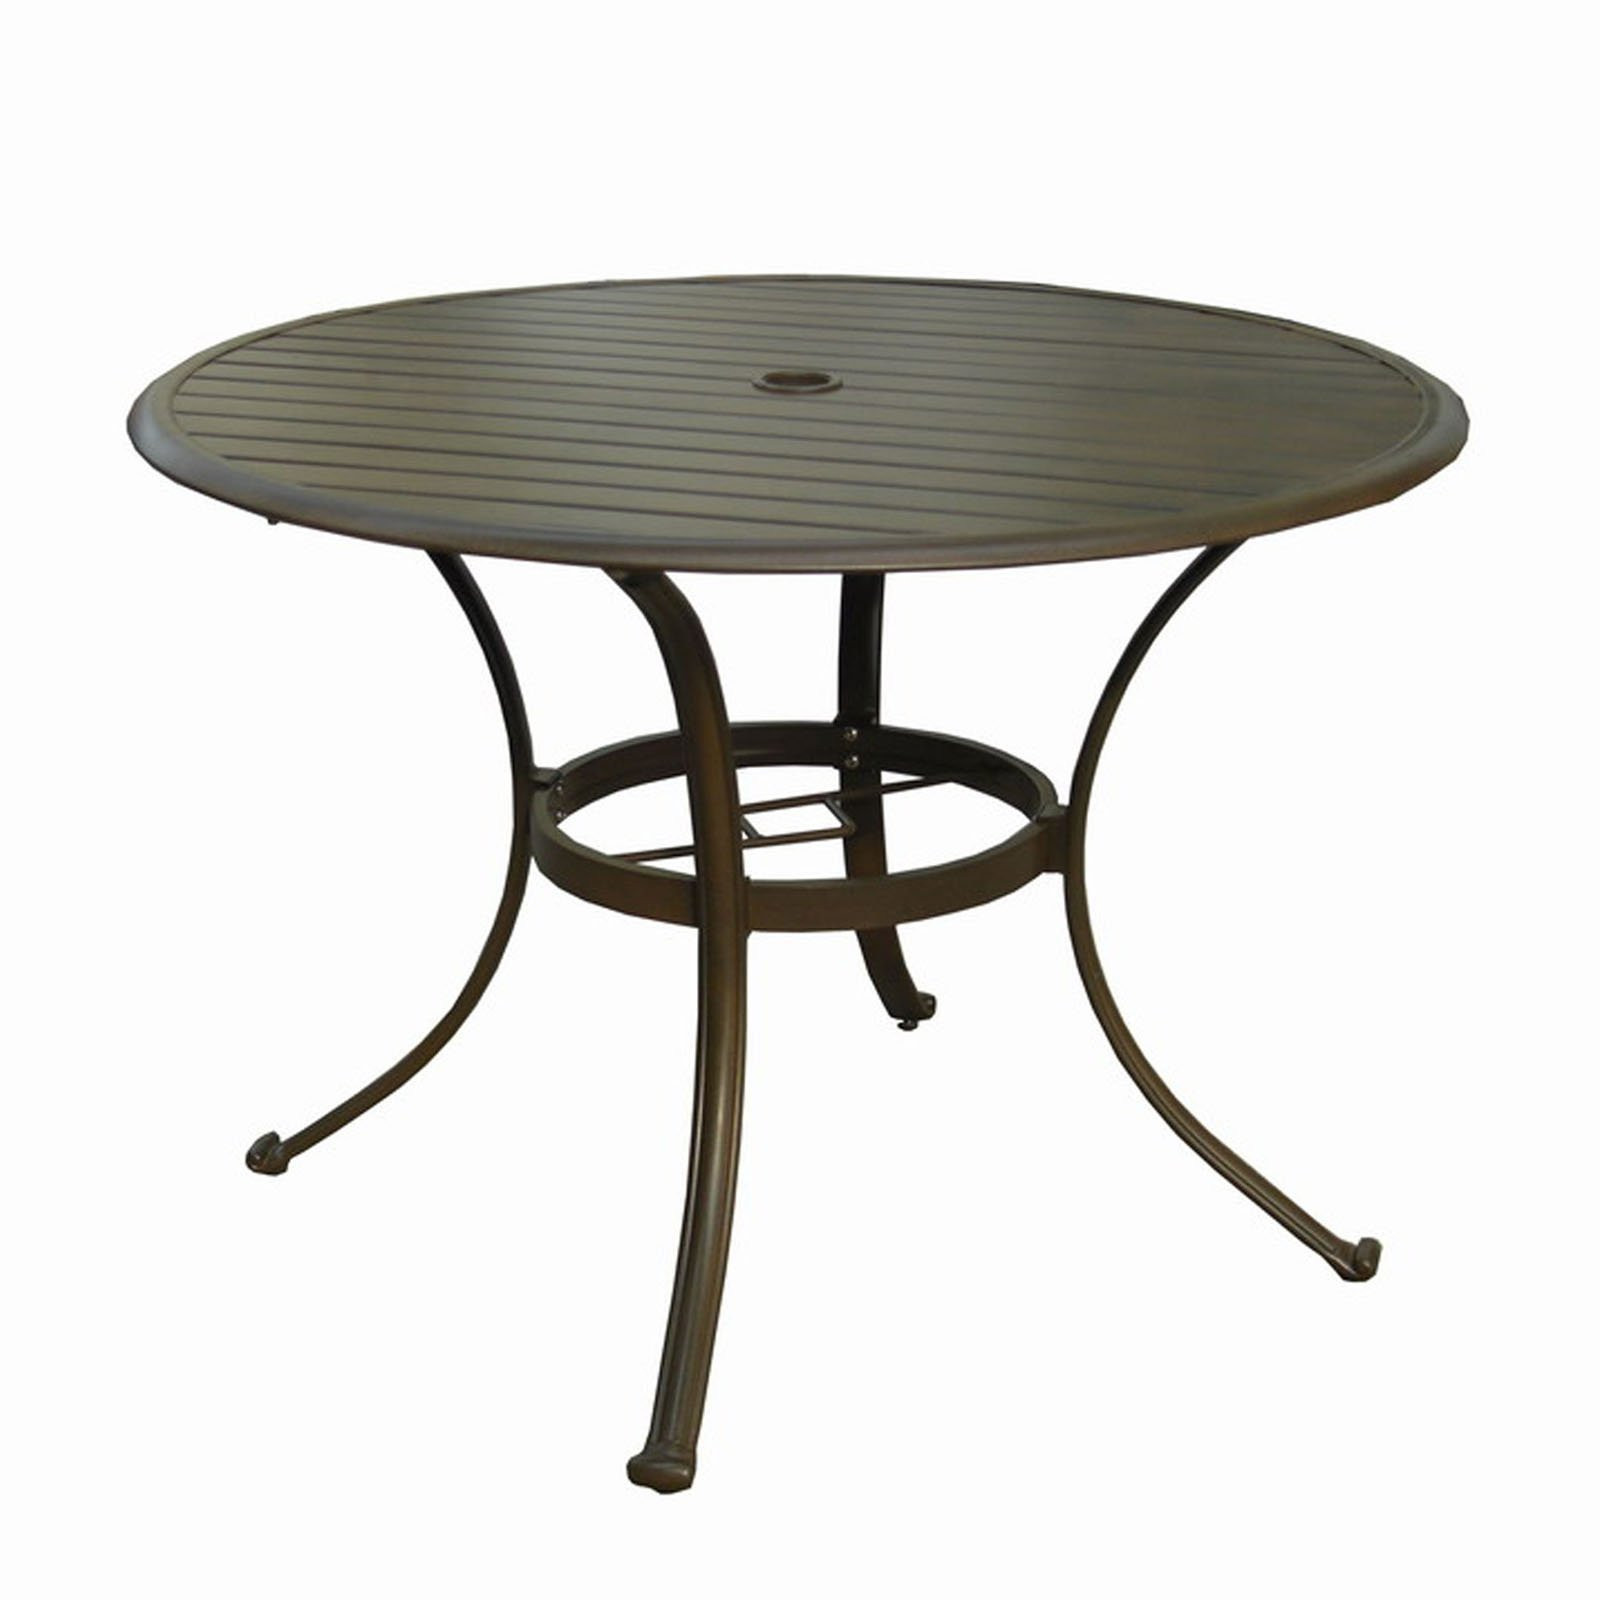 Best ideas about Round Patio Dining Table . Save or Pin Panama Jack Island Breeze Slatted Aluminum 42 in Round Now.